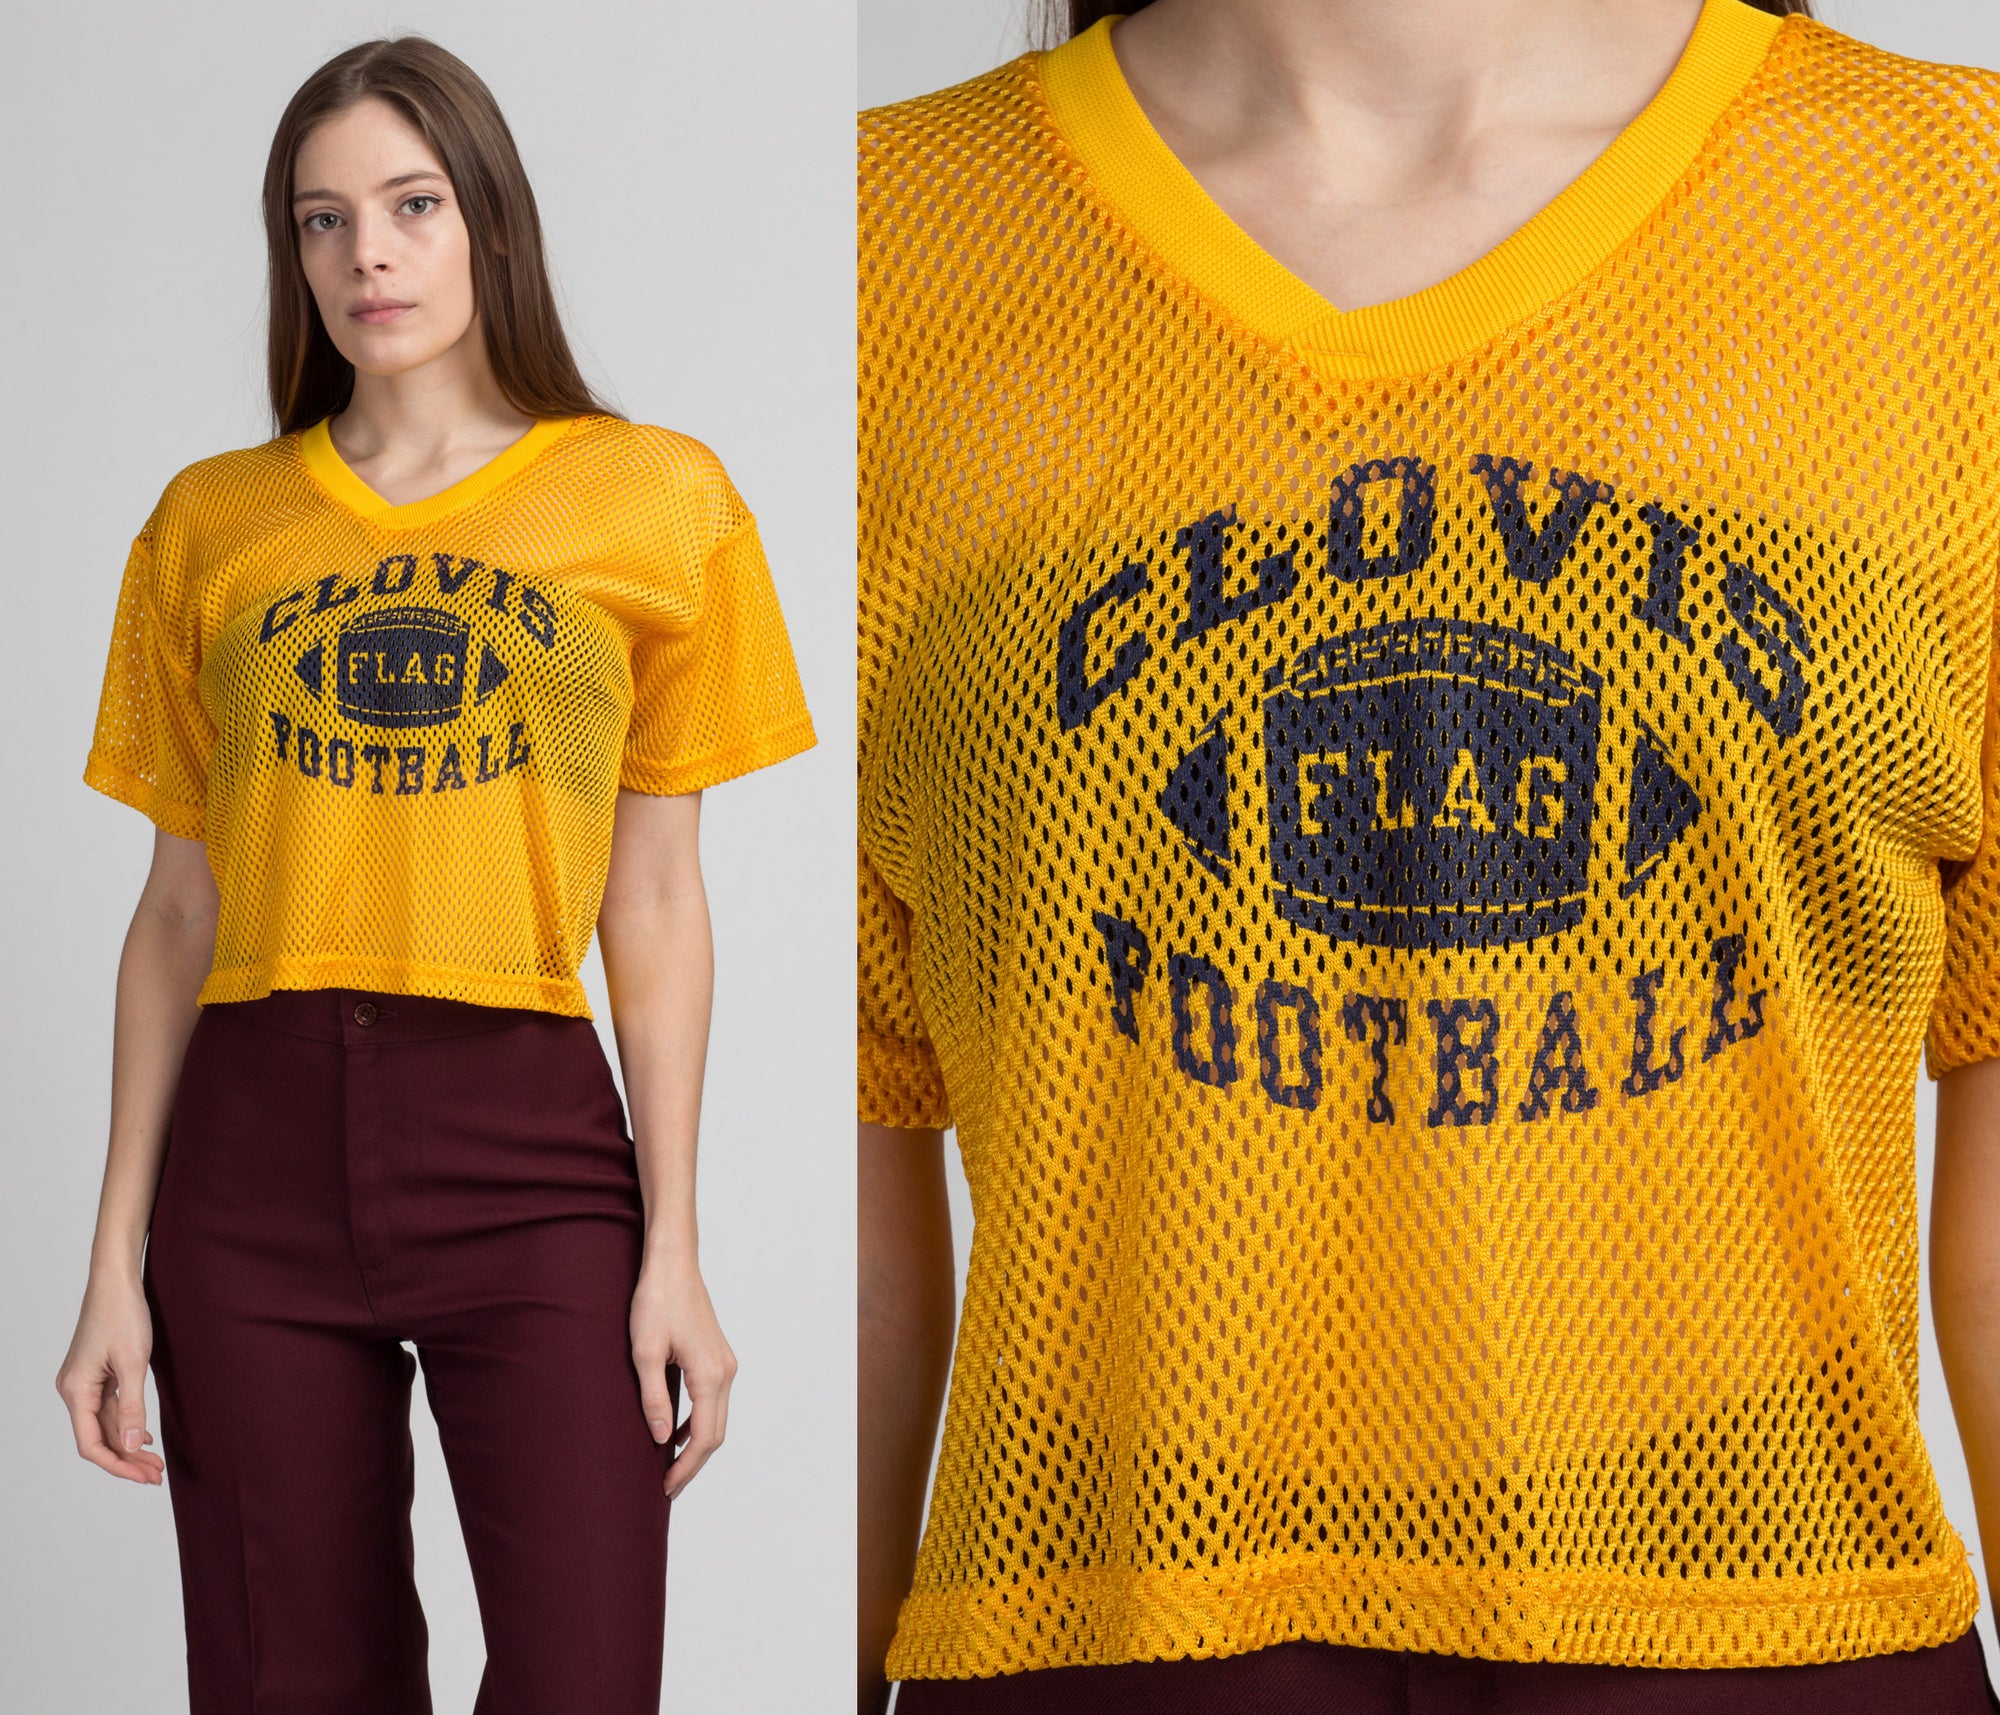 90s Cropped Mesh Football Jersey - Medium | Vintage Yellow Sheer Sportswear Athletic Shirt